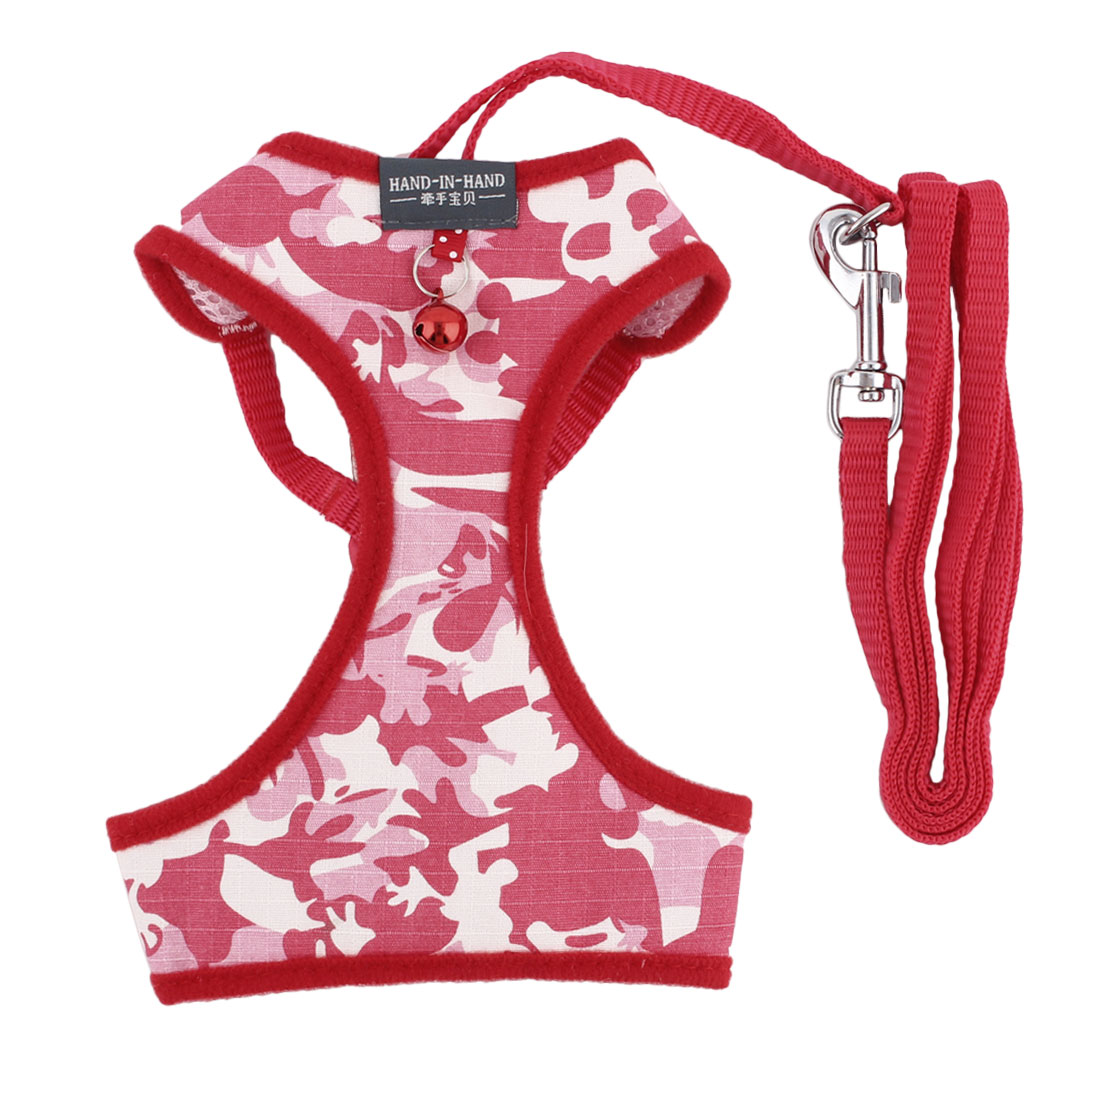 Dog Camouflage Cloth Mesh Breathable Harness Vest Leash Red Size XL